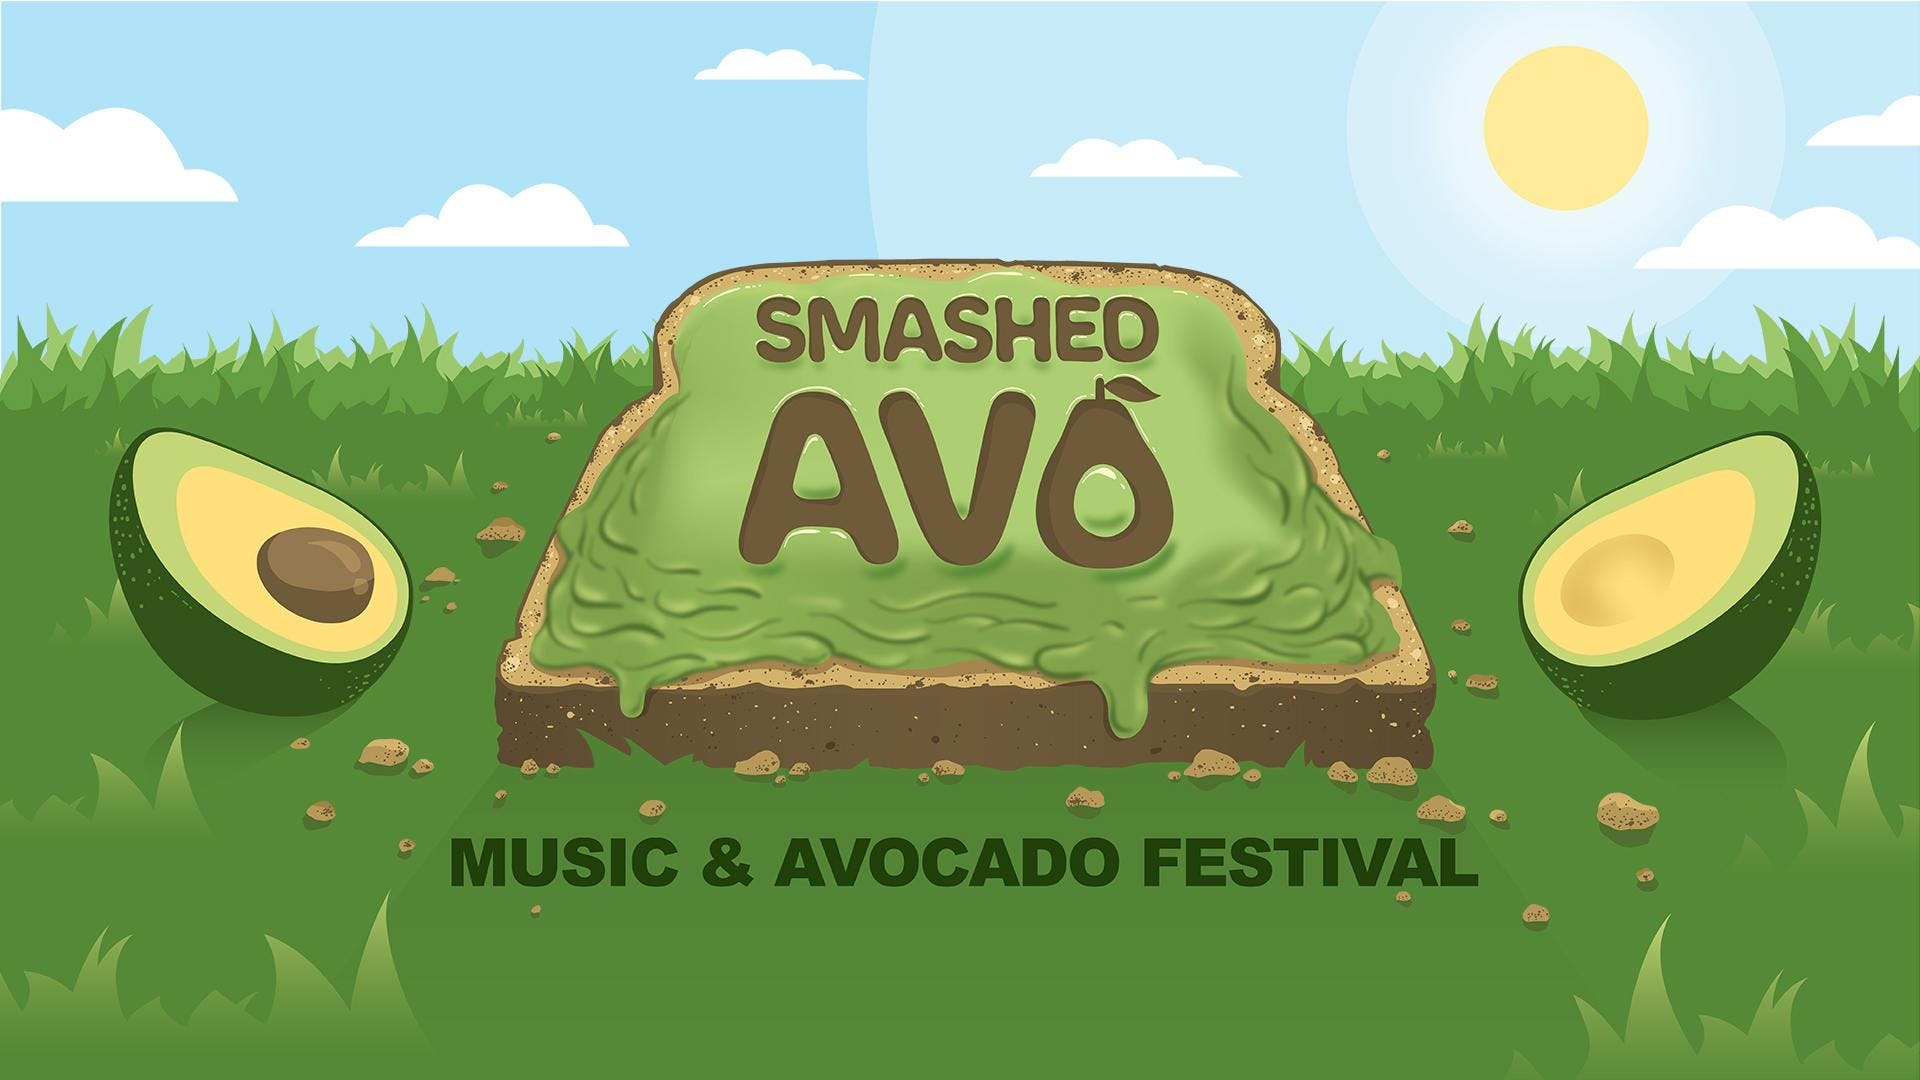 Smashed Avo ~ Music & Avocado Festival